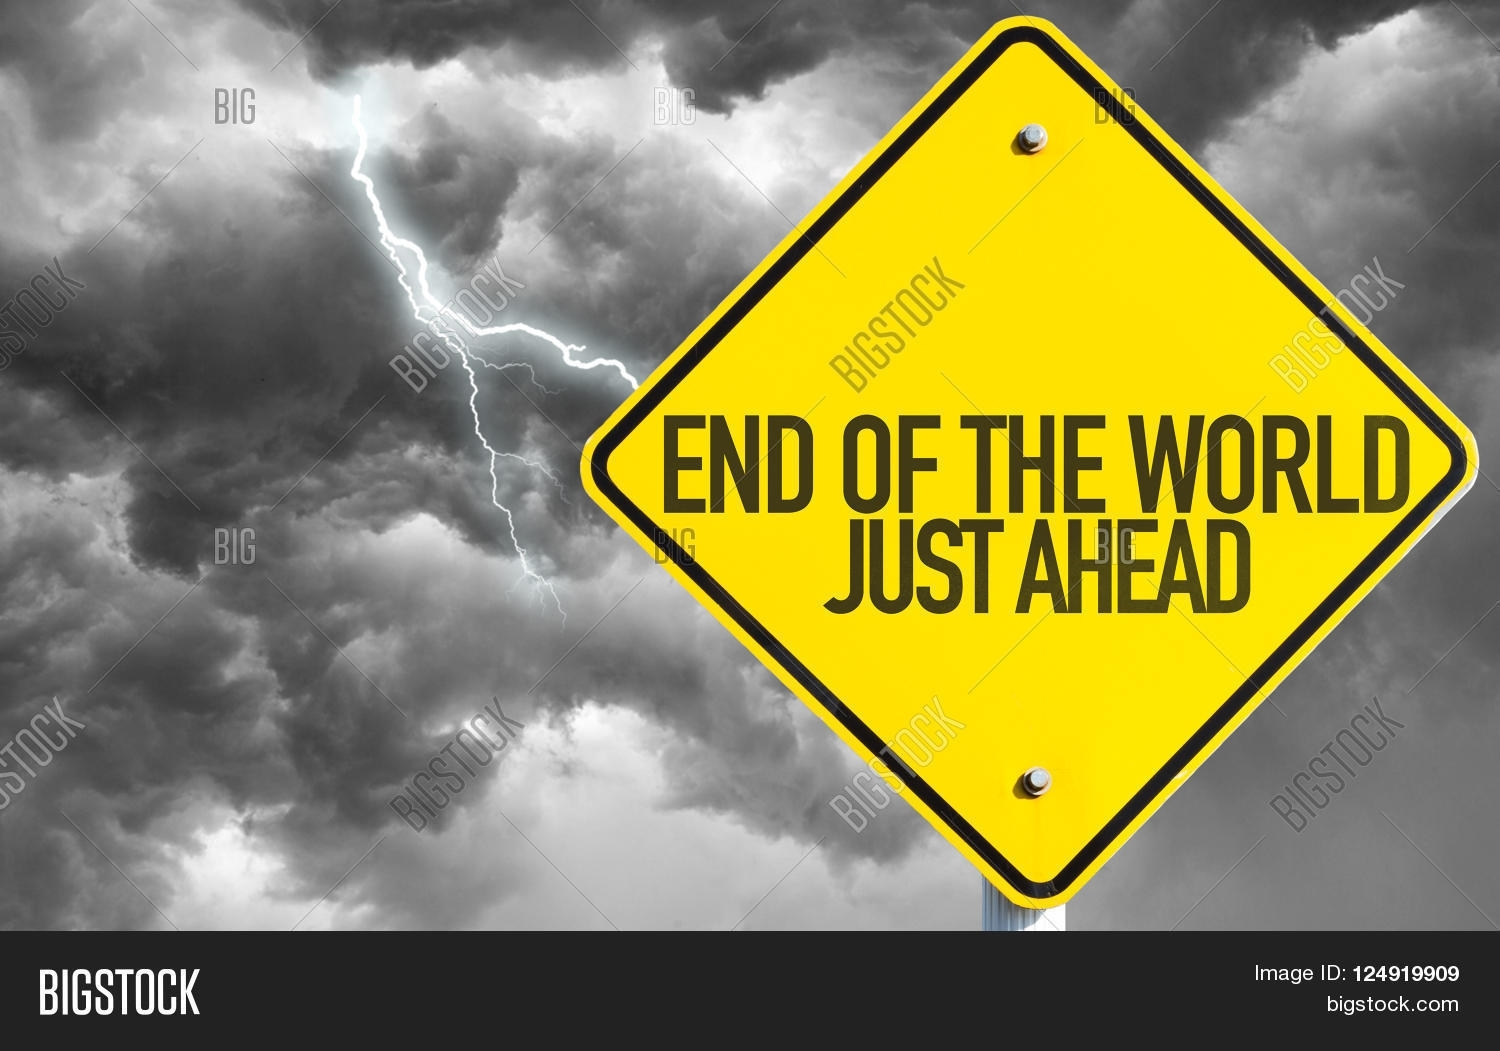 End World - Just Ahead Image & Photo (Free Trial) | Bigstock in What Day Is The End Of The World On